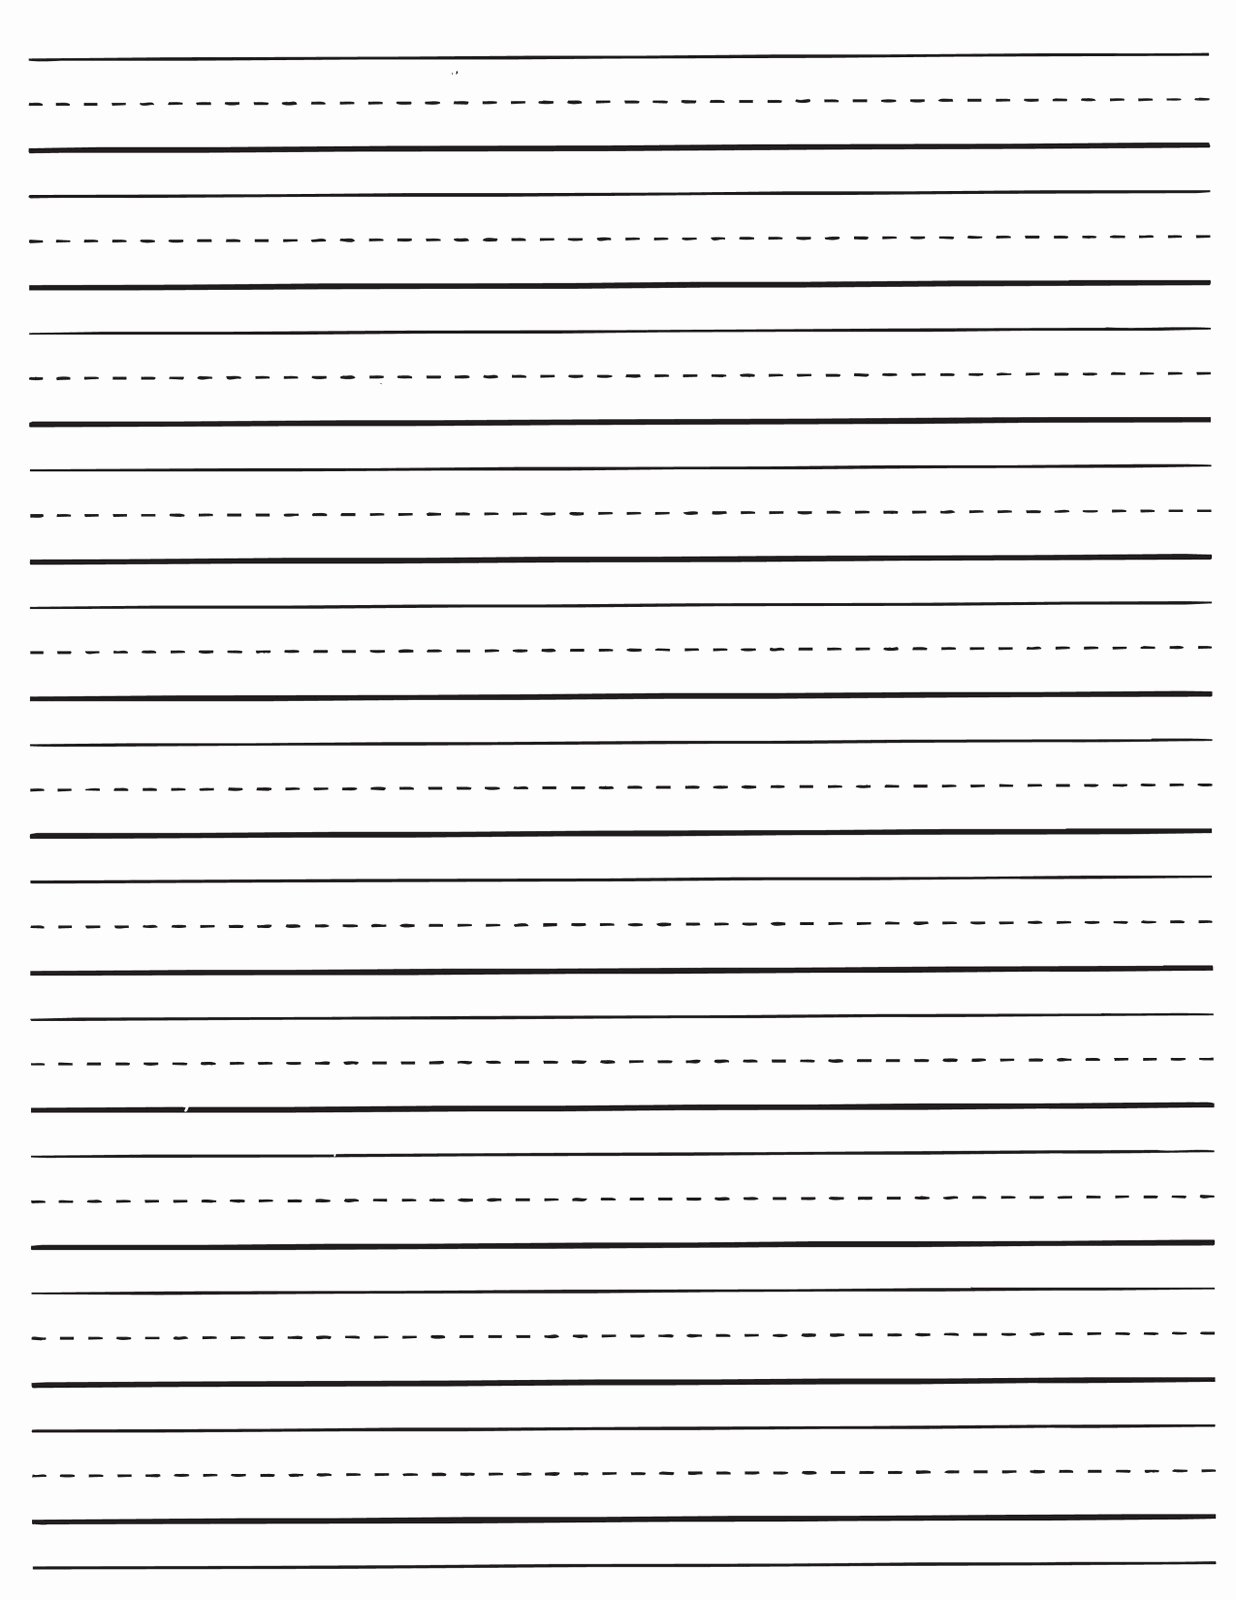 Printable Lined Writing Paper Fresh Free Printable Lined Handwriting Paper Printable Pages